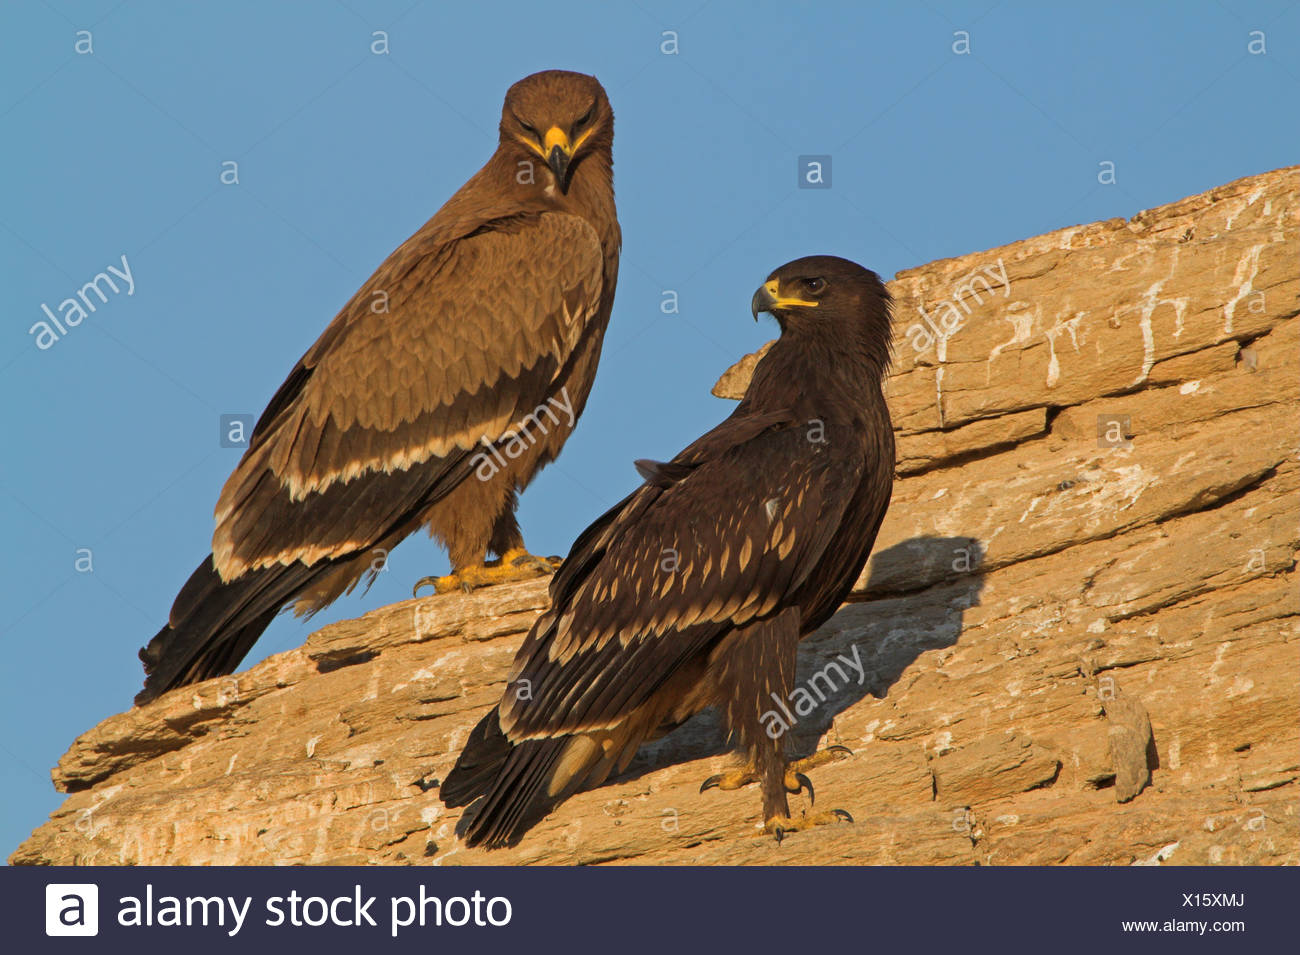 Two Greater Spotted Eagles sitting on a rock - Stock Image